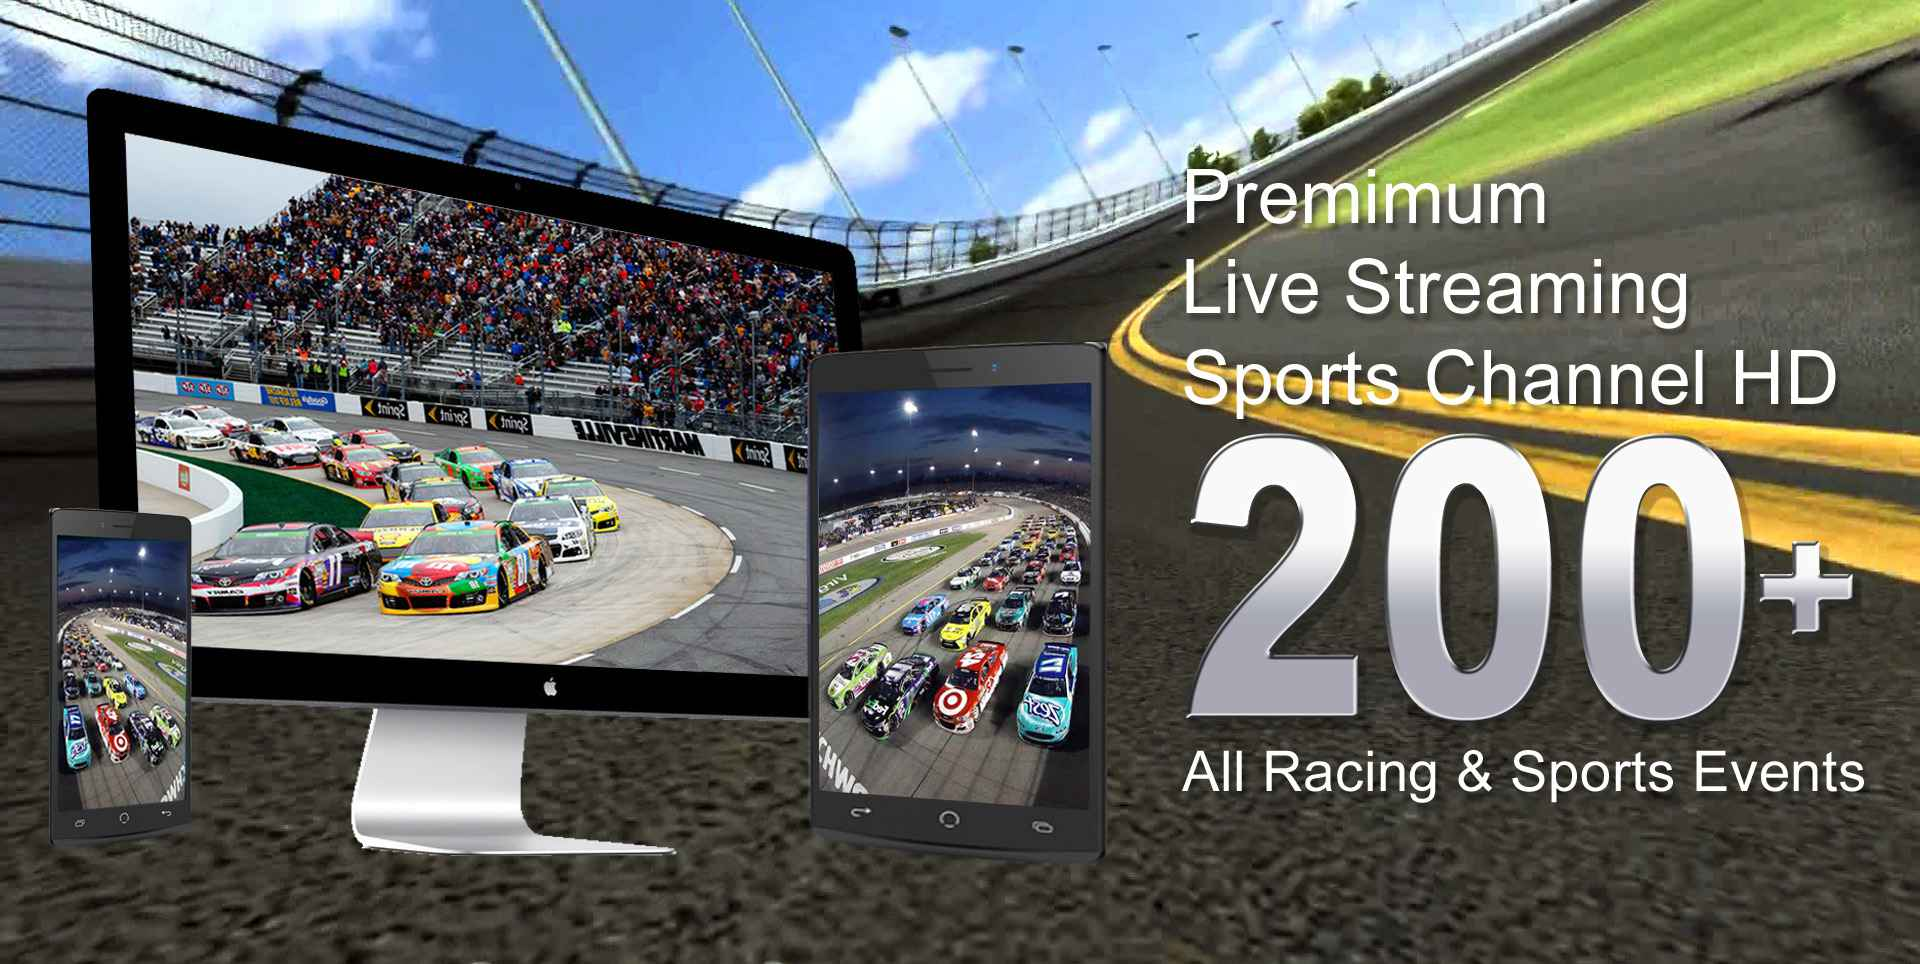 Nascar Pure Michigan 400 Race Online